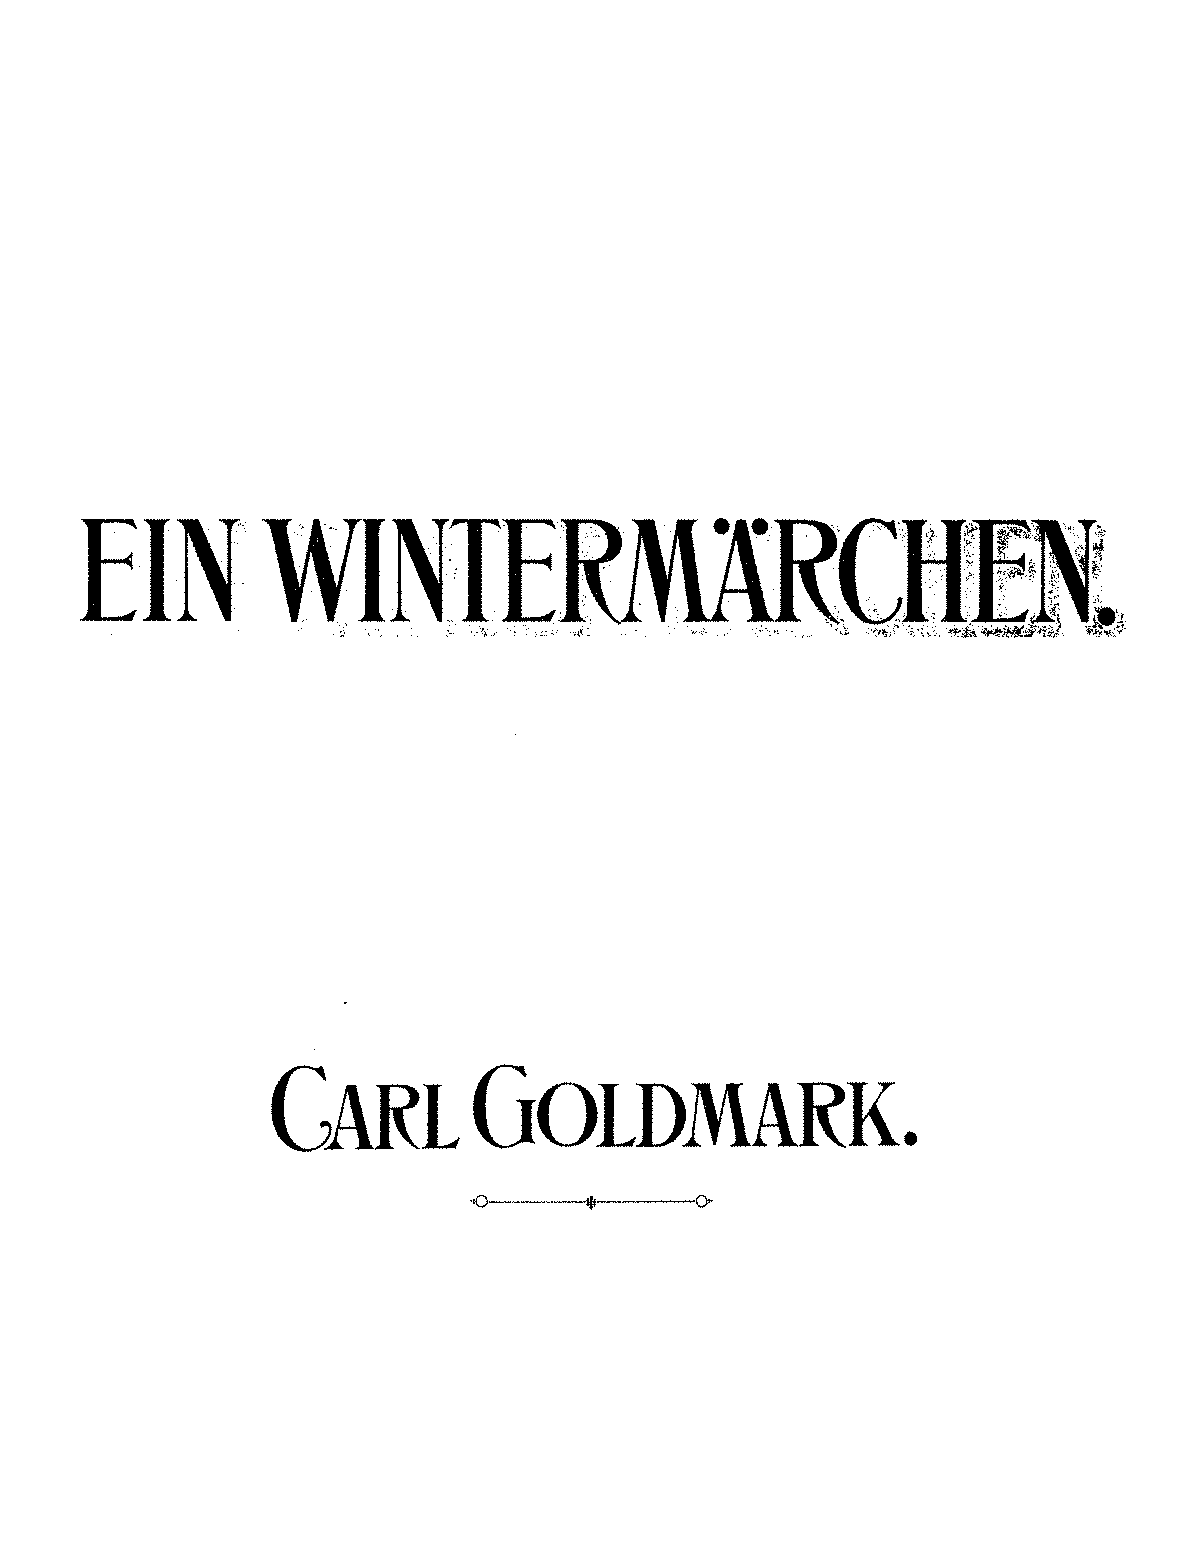 PMLP258682-Goldmark - Ein Wintermarchen VS rsl.pdf